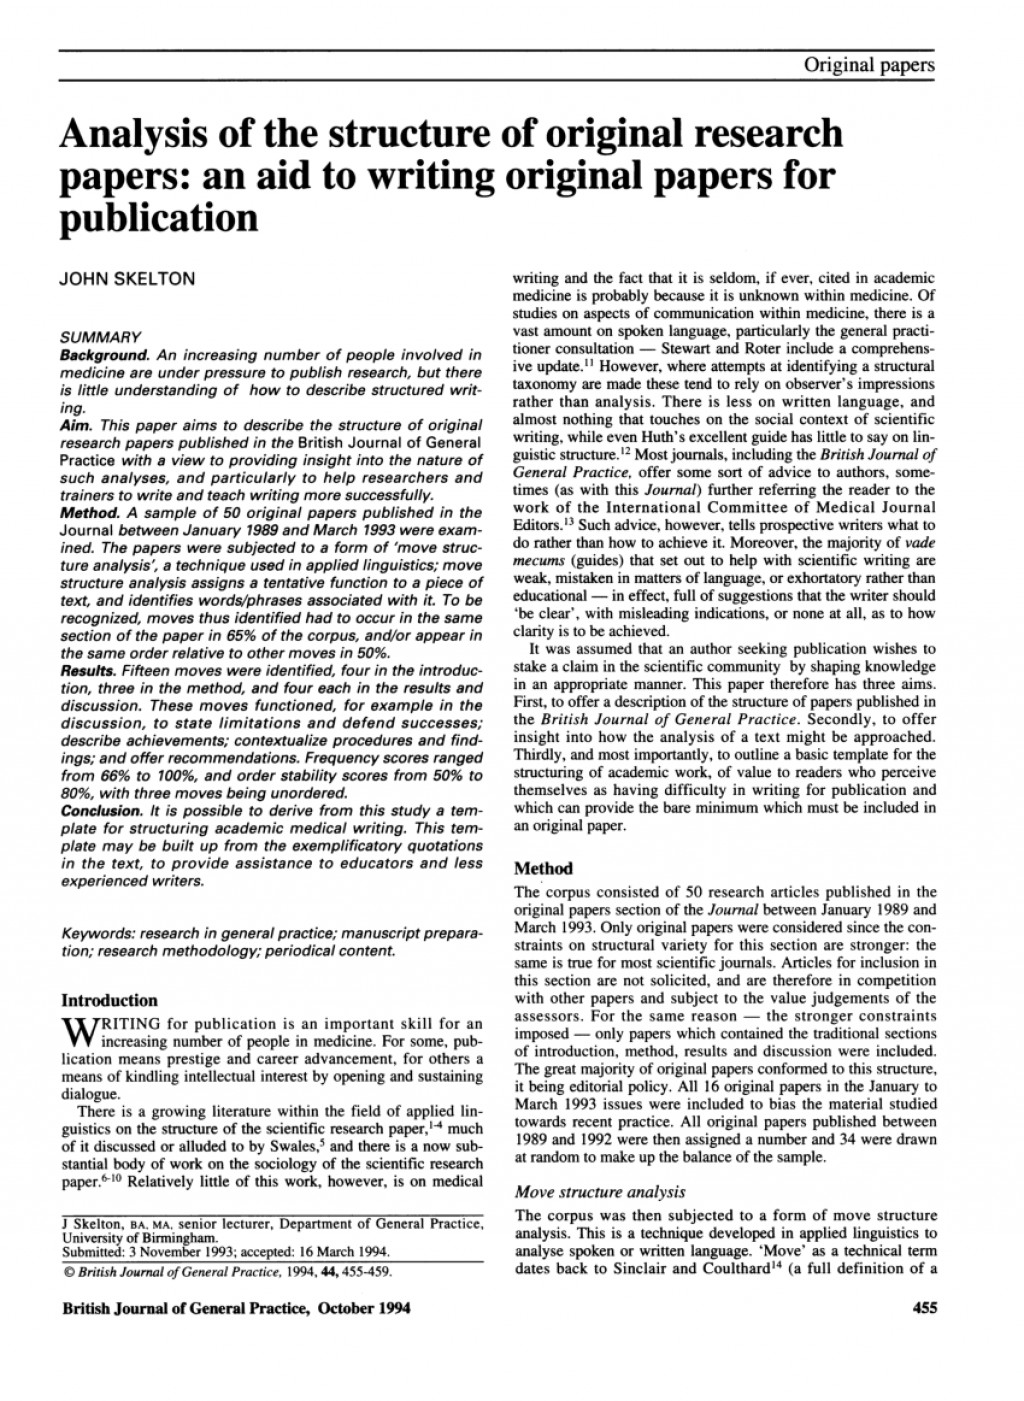 006 Research Paper Cheap Original Papers Remarkable Large